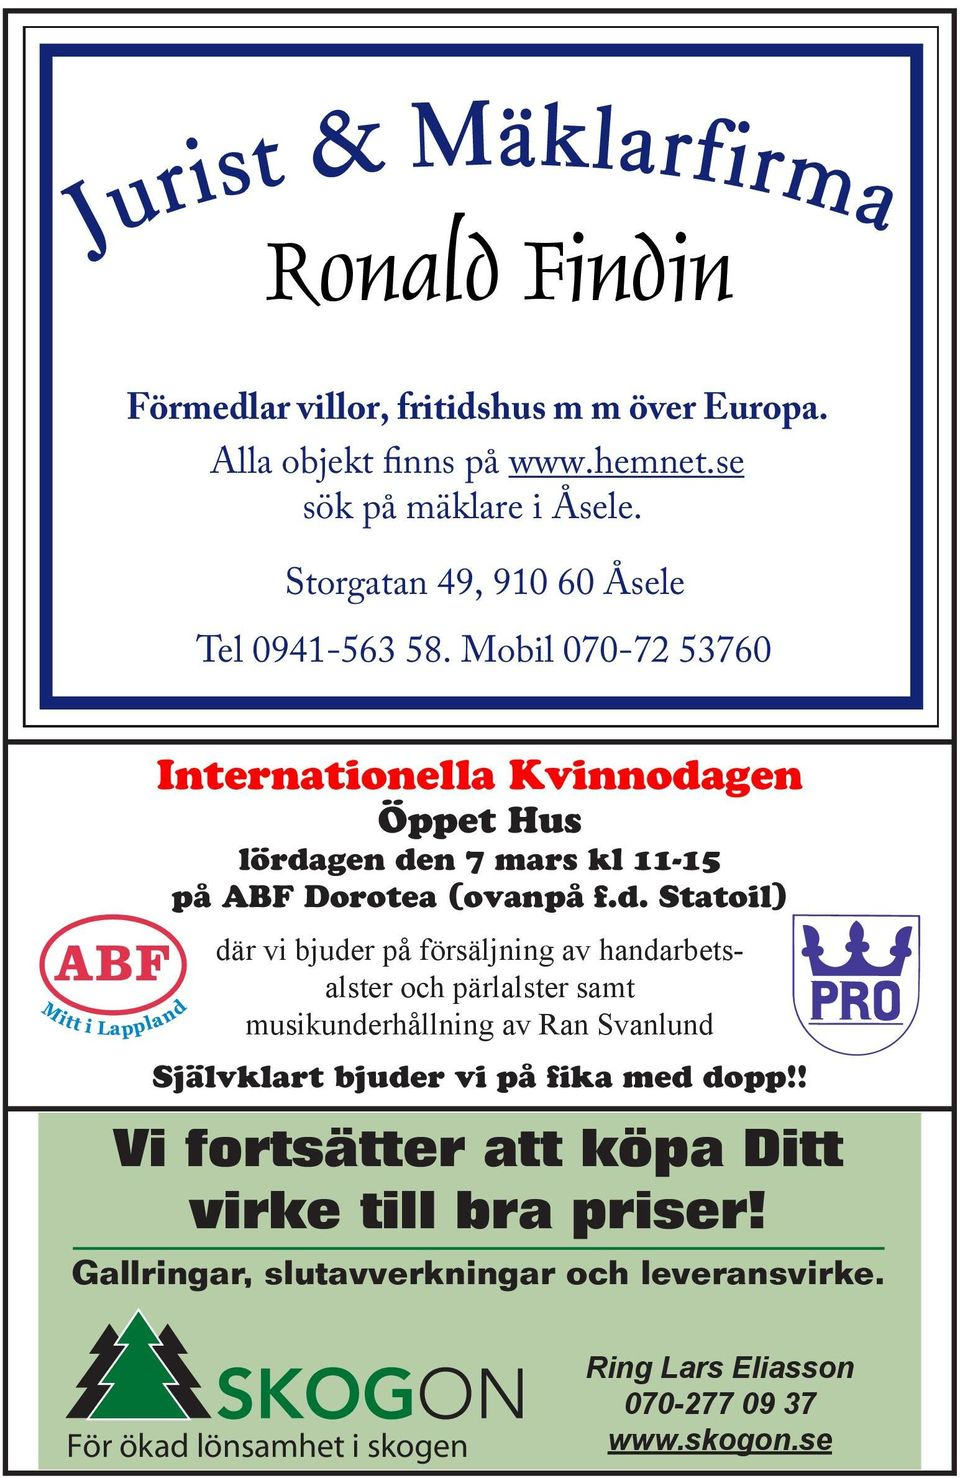 Mobil 070-72 53760 Internationella Kvinnoda